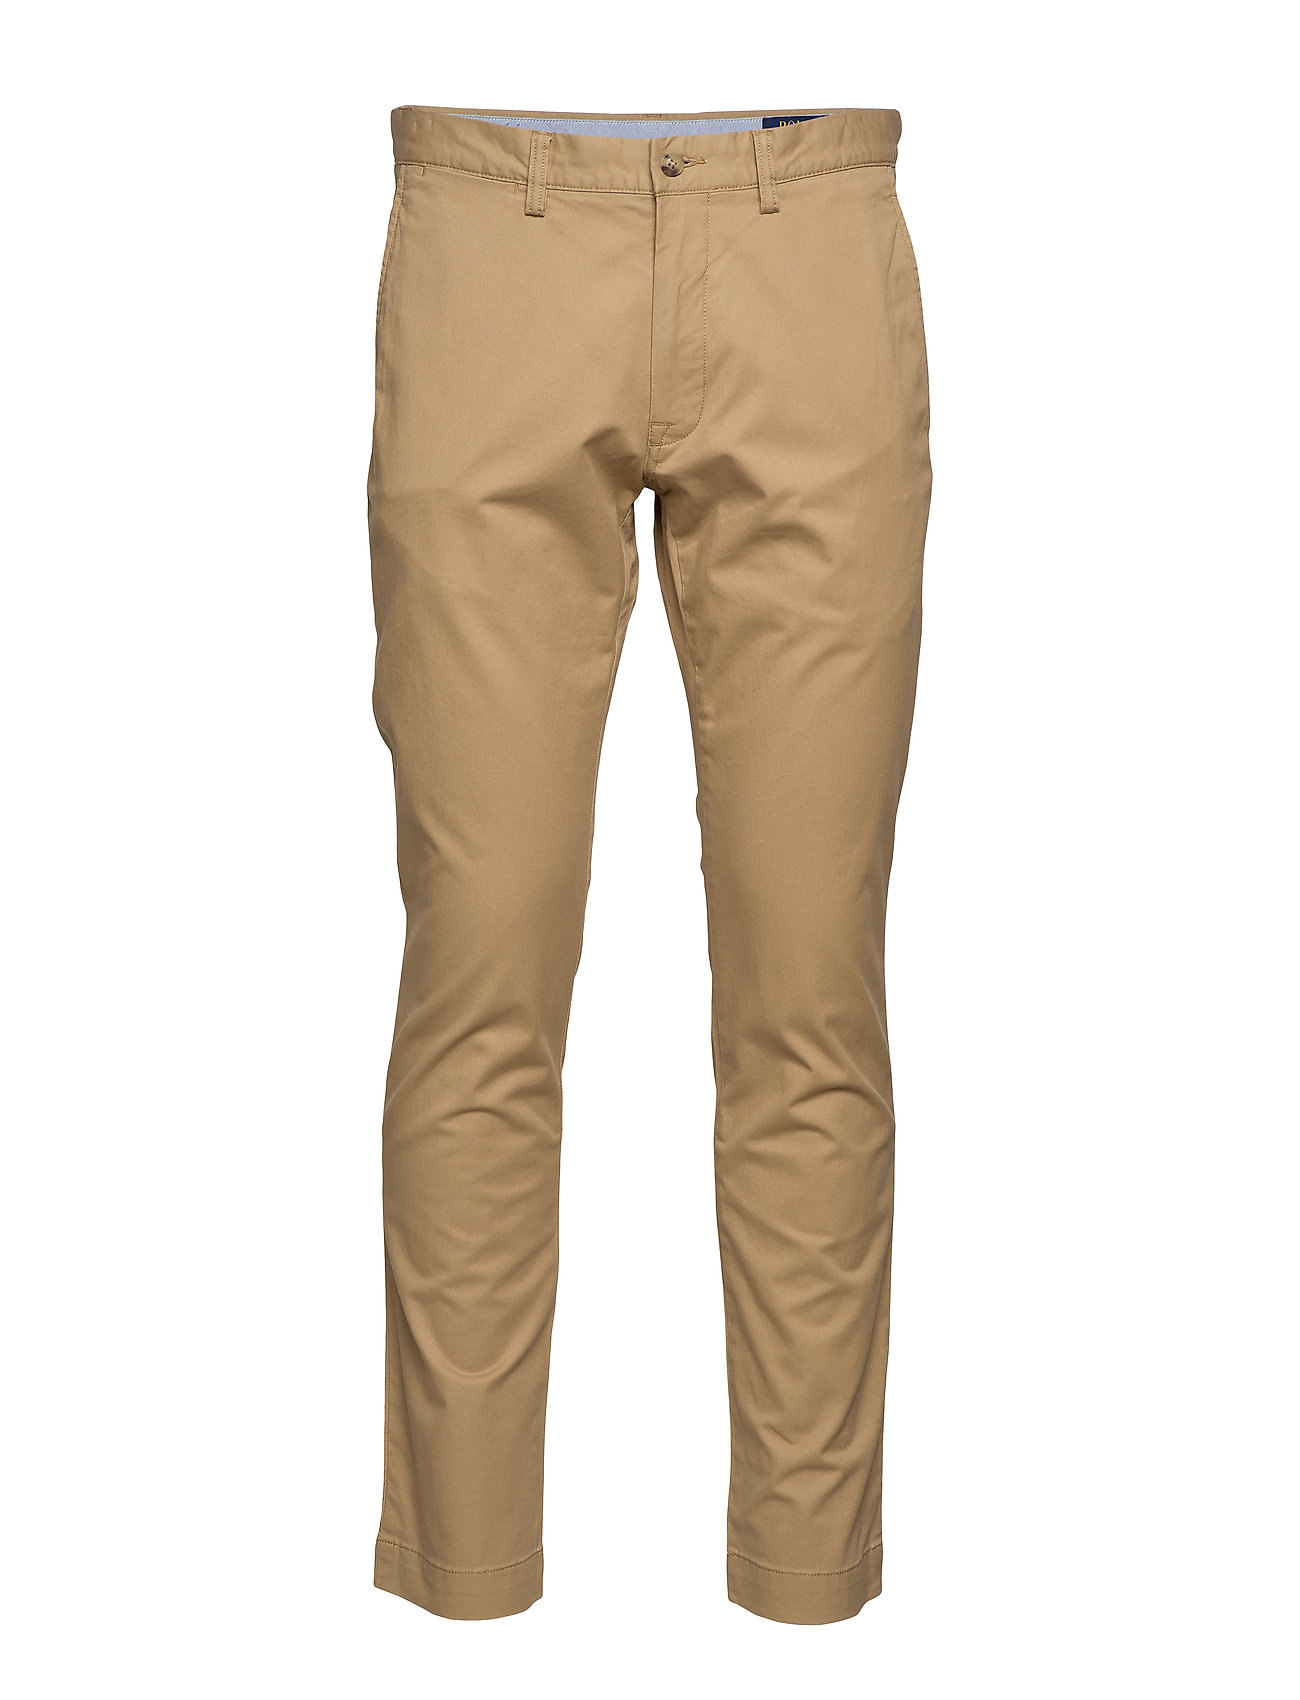 Polo Ralph Lauren Stretch Slim Fit Cotton Chino - LUXURY TAN